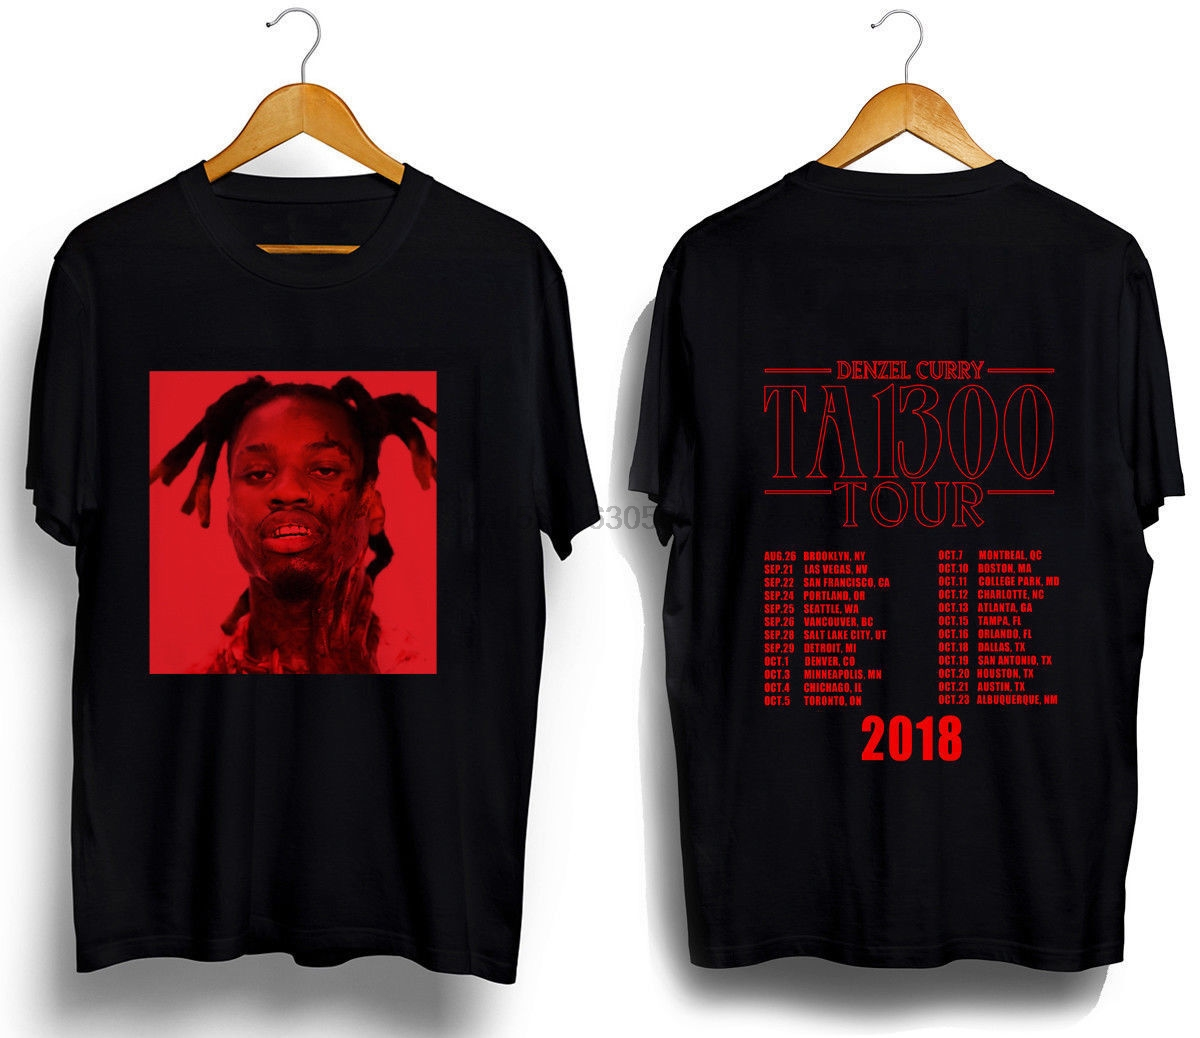 New Popular Denzel Curry Taboo Tour North America 2020 T Shirt Size S To 5xl